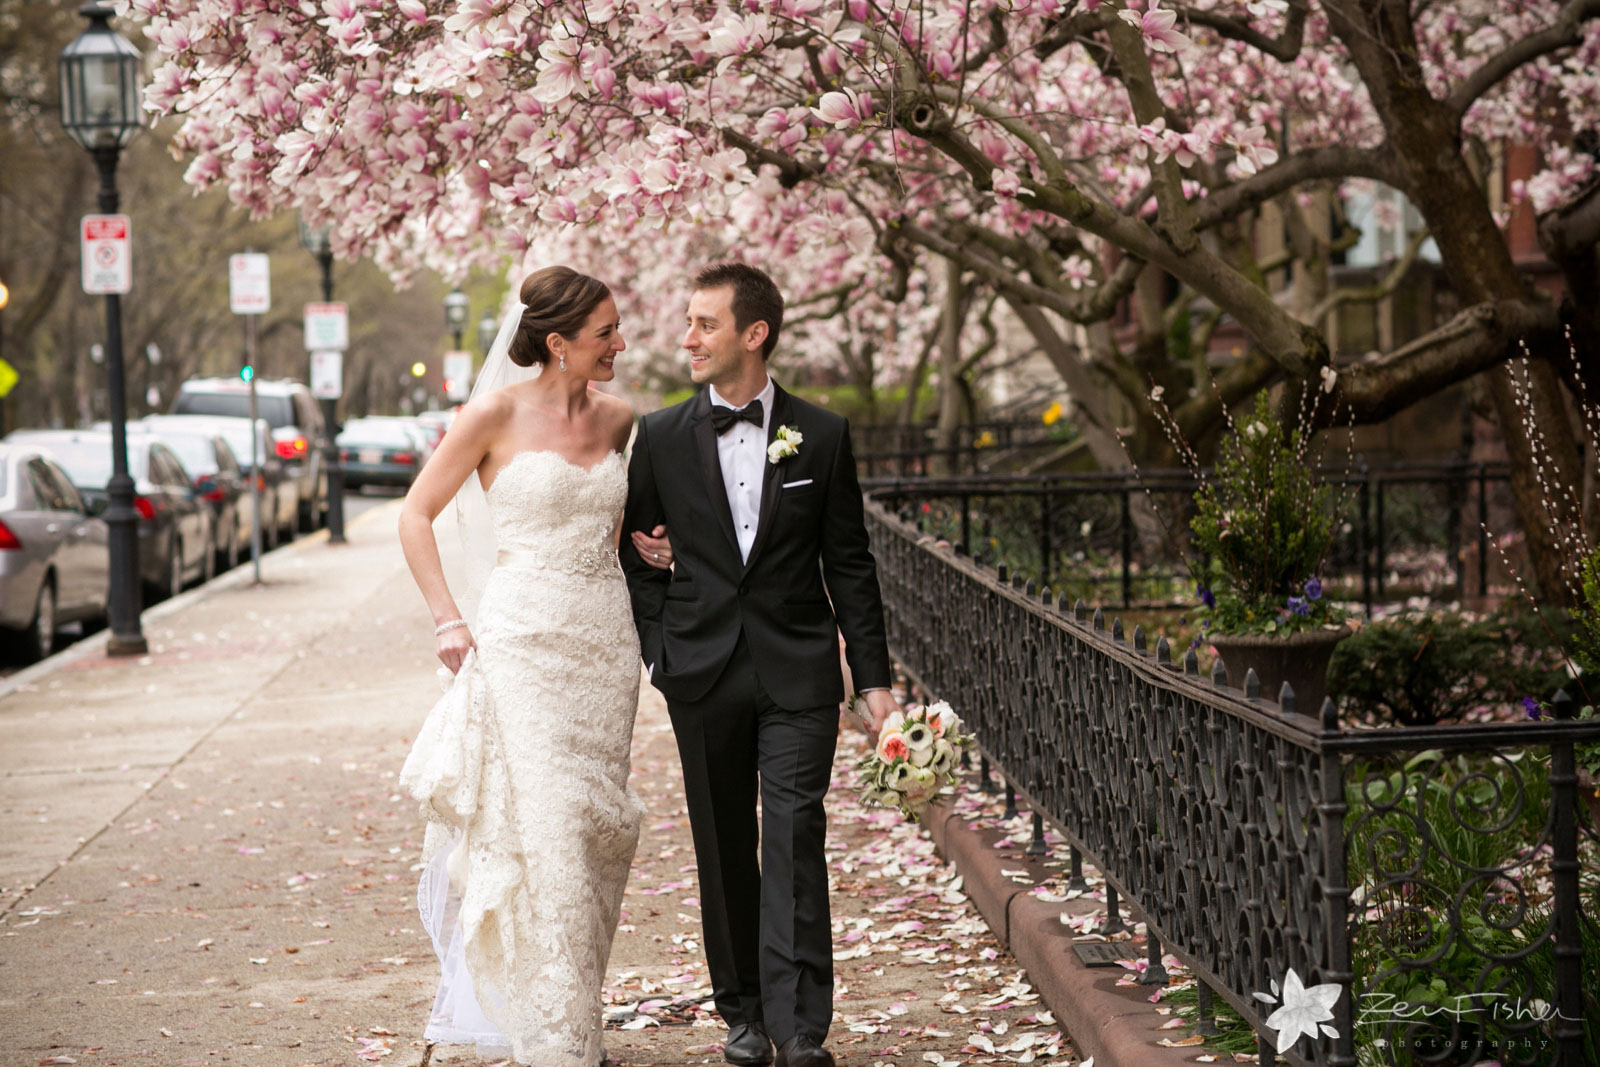 Bride and groom walking together under lush pink and white blossoming magnolia trees.